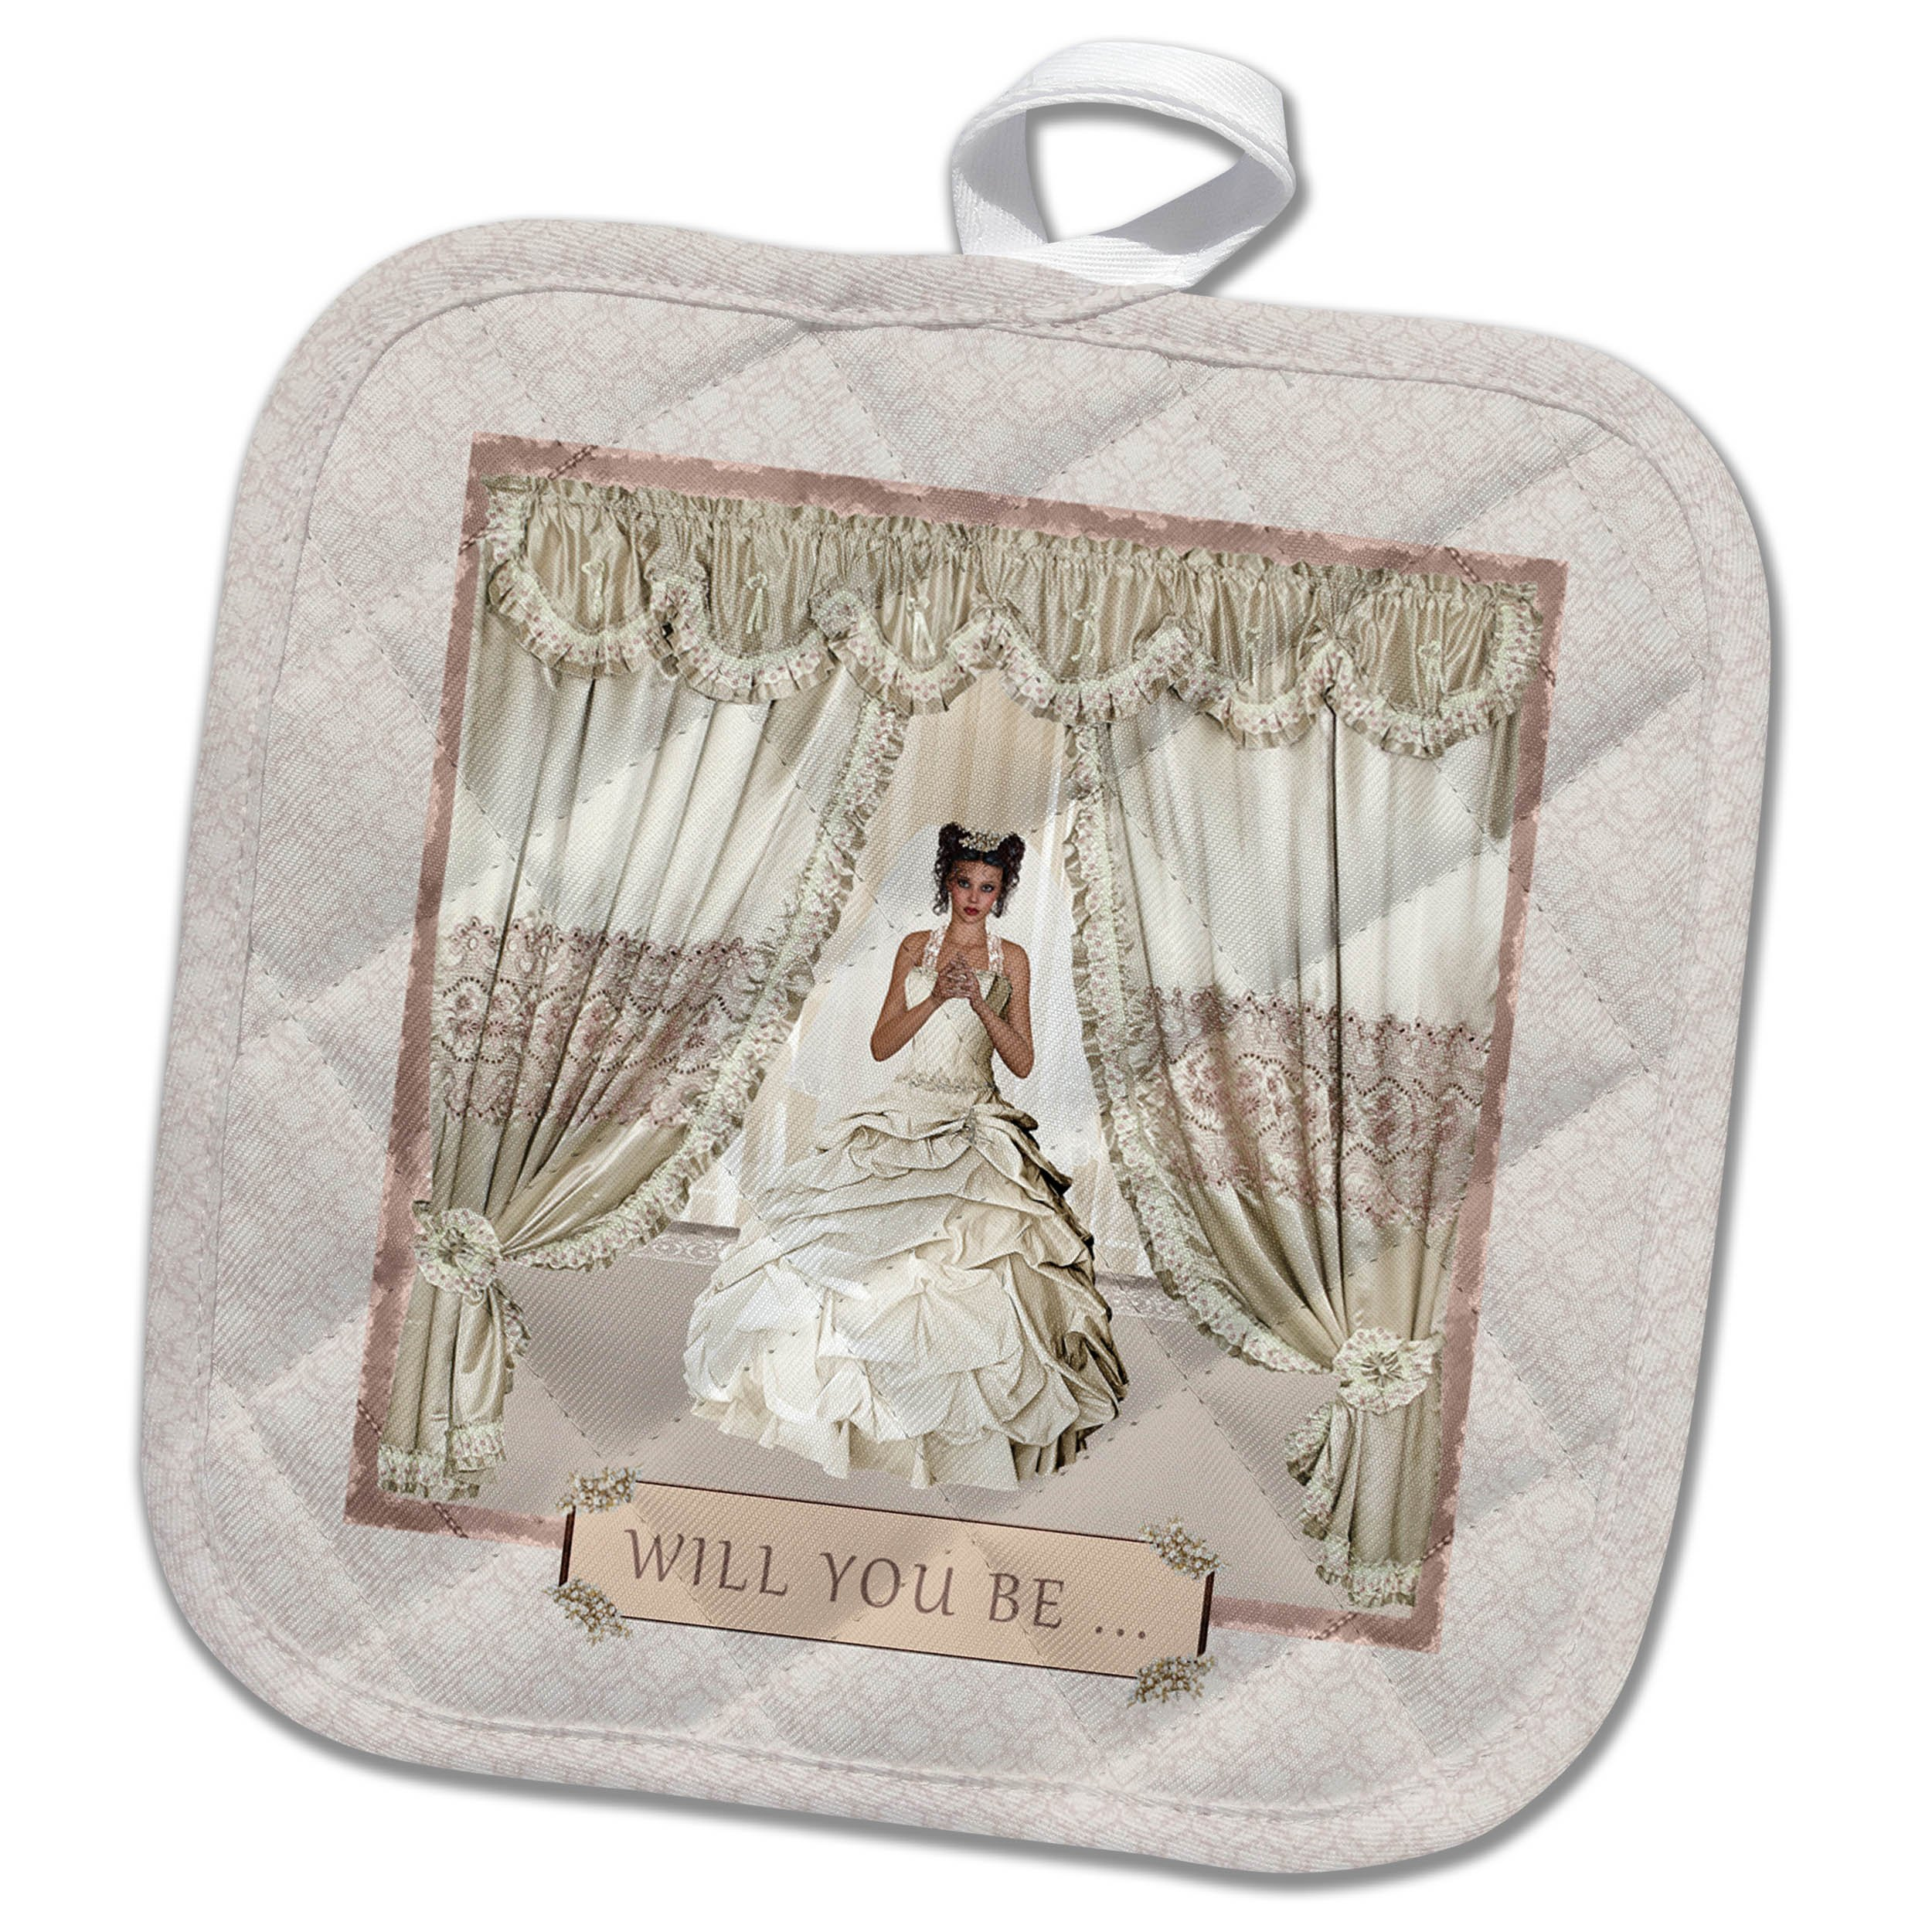 3dRose Beverly Turner Wedding Bridal Party Design - Bride in Wedding Gown, Drapes in Window, Will you be, Cream and Rose - 8x8 Potholder (phl_282067_1)